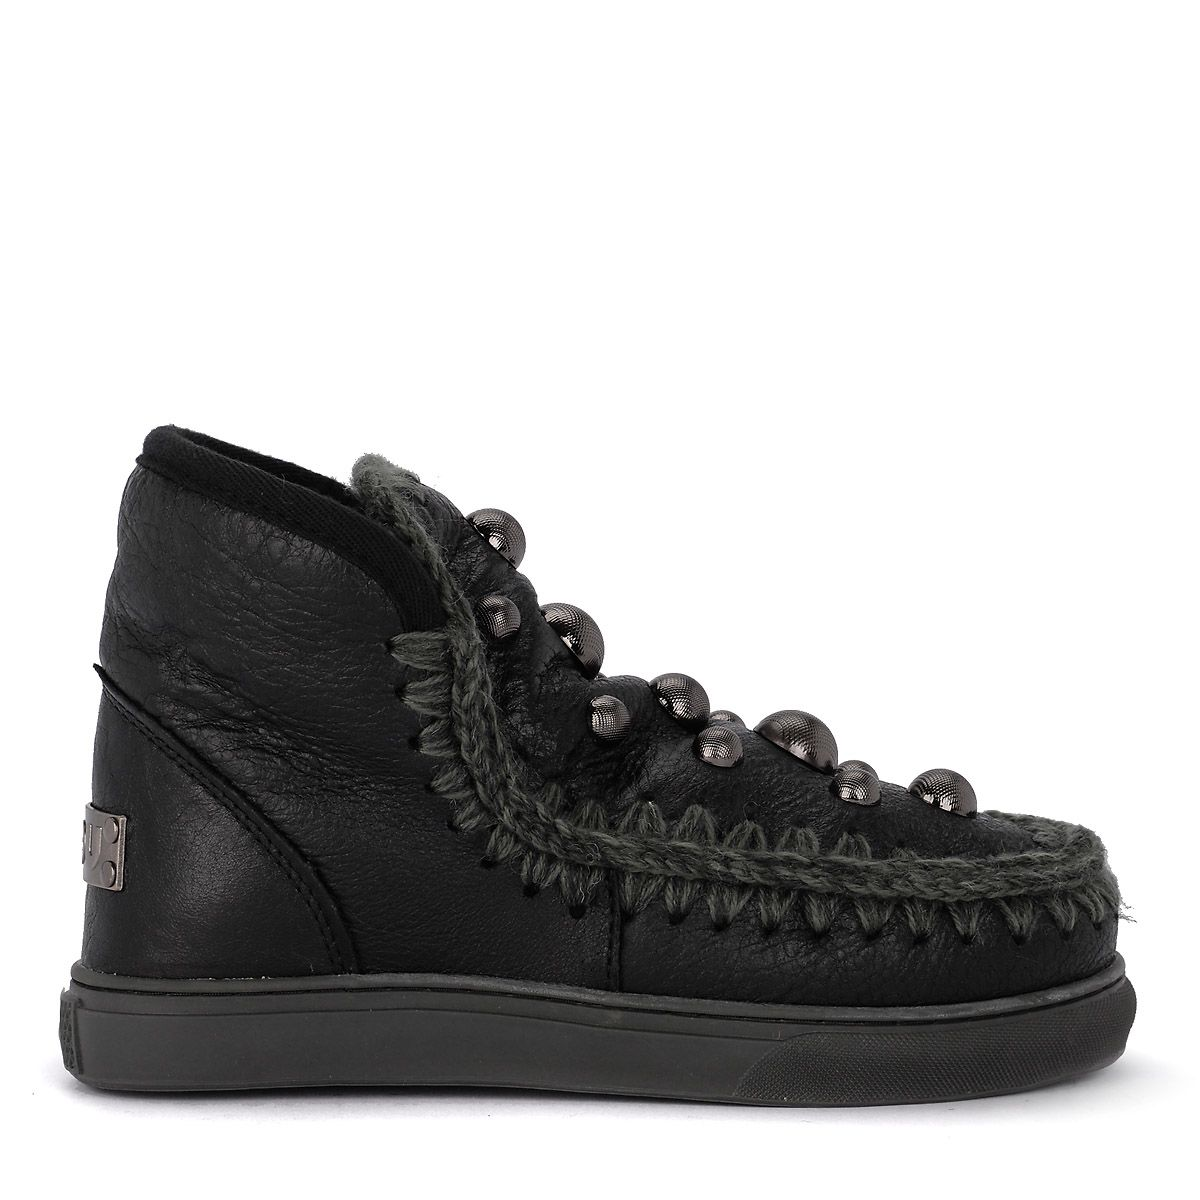 Mou ESKIMO SNEAKER ROUND STUDS BLACK LEATHER ANKLE BOOTS WITH STUDS